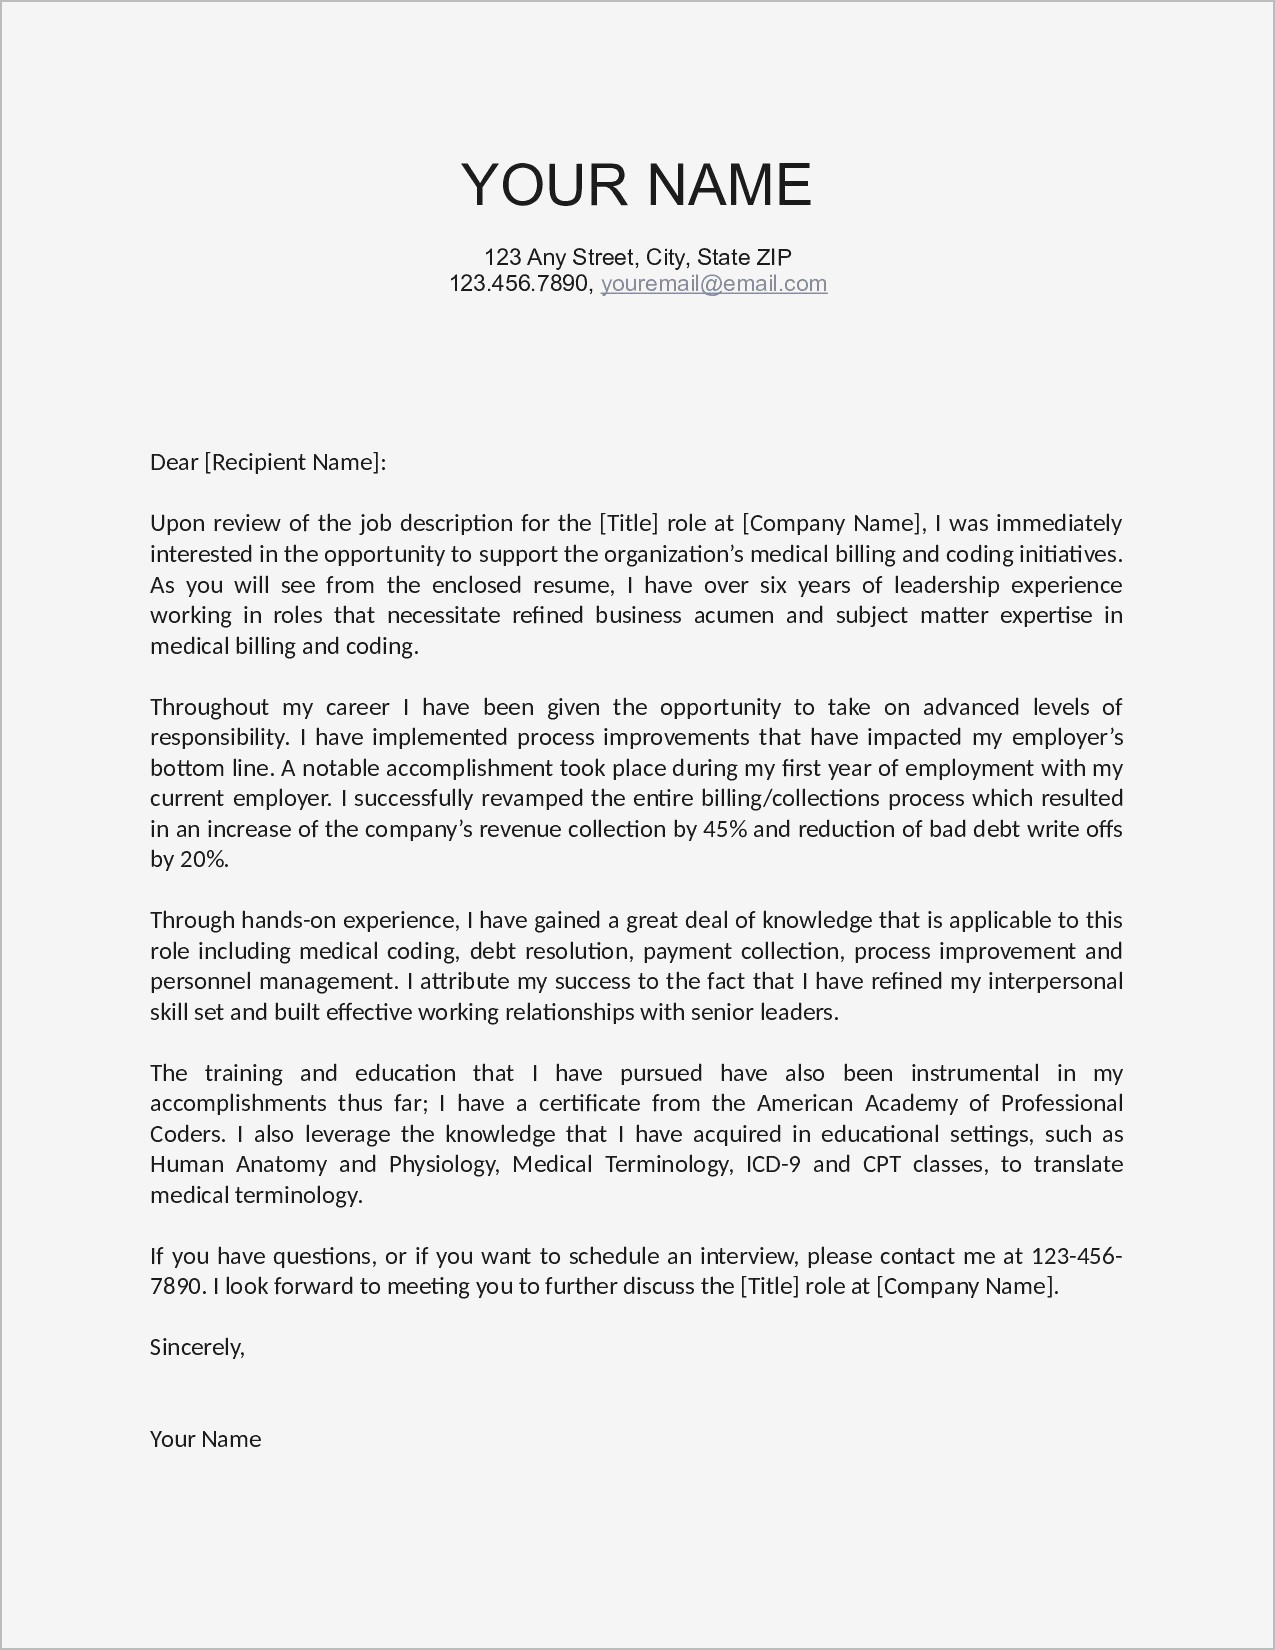 Letter Of Interest for Employment Template - Cover Letter for Employment Pdf format